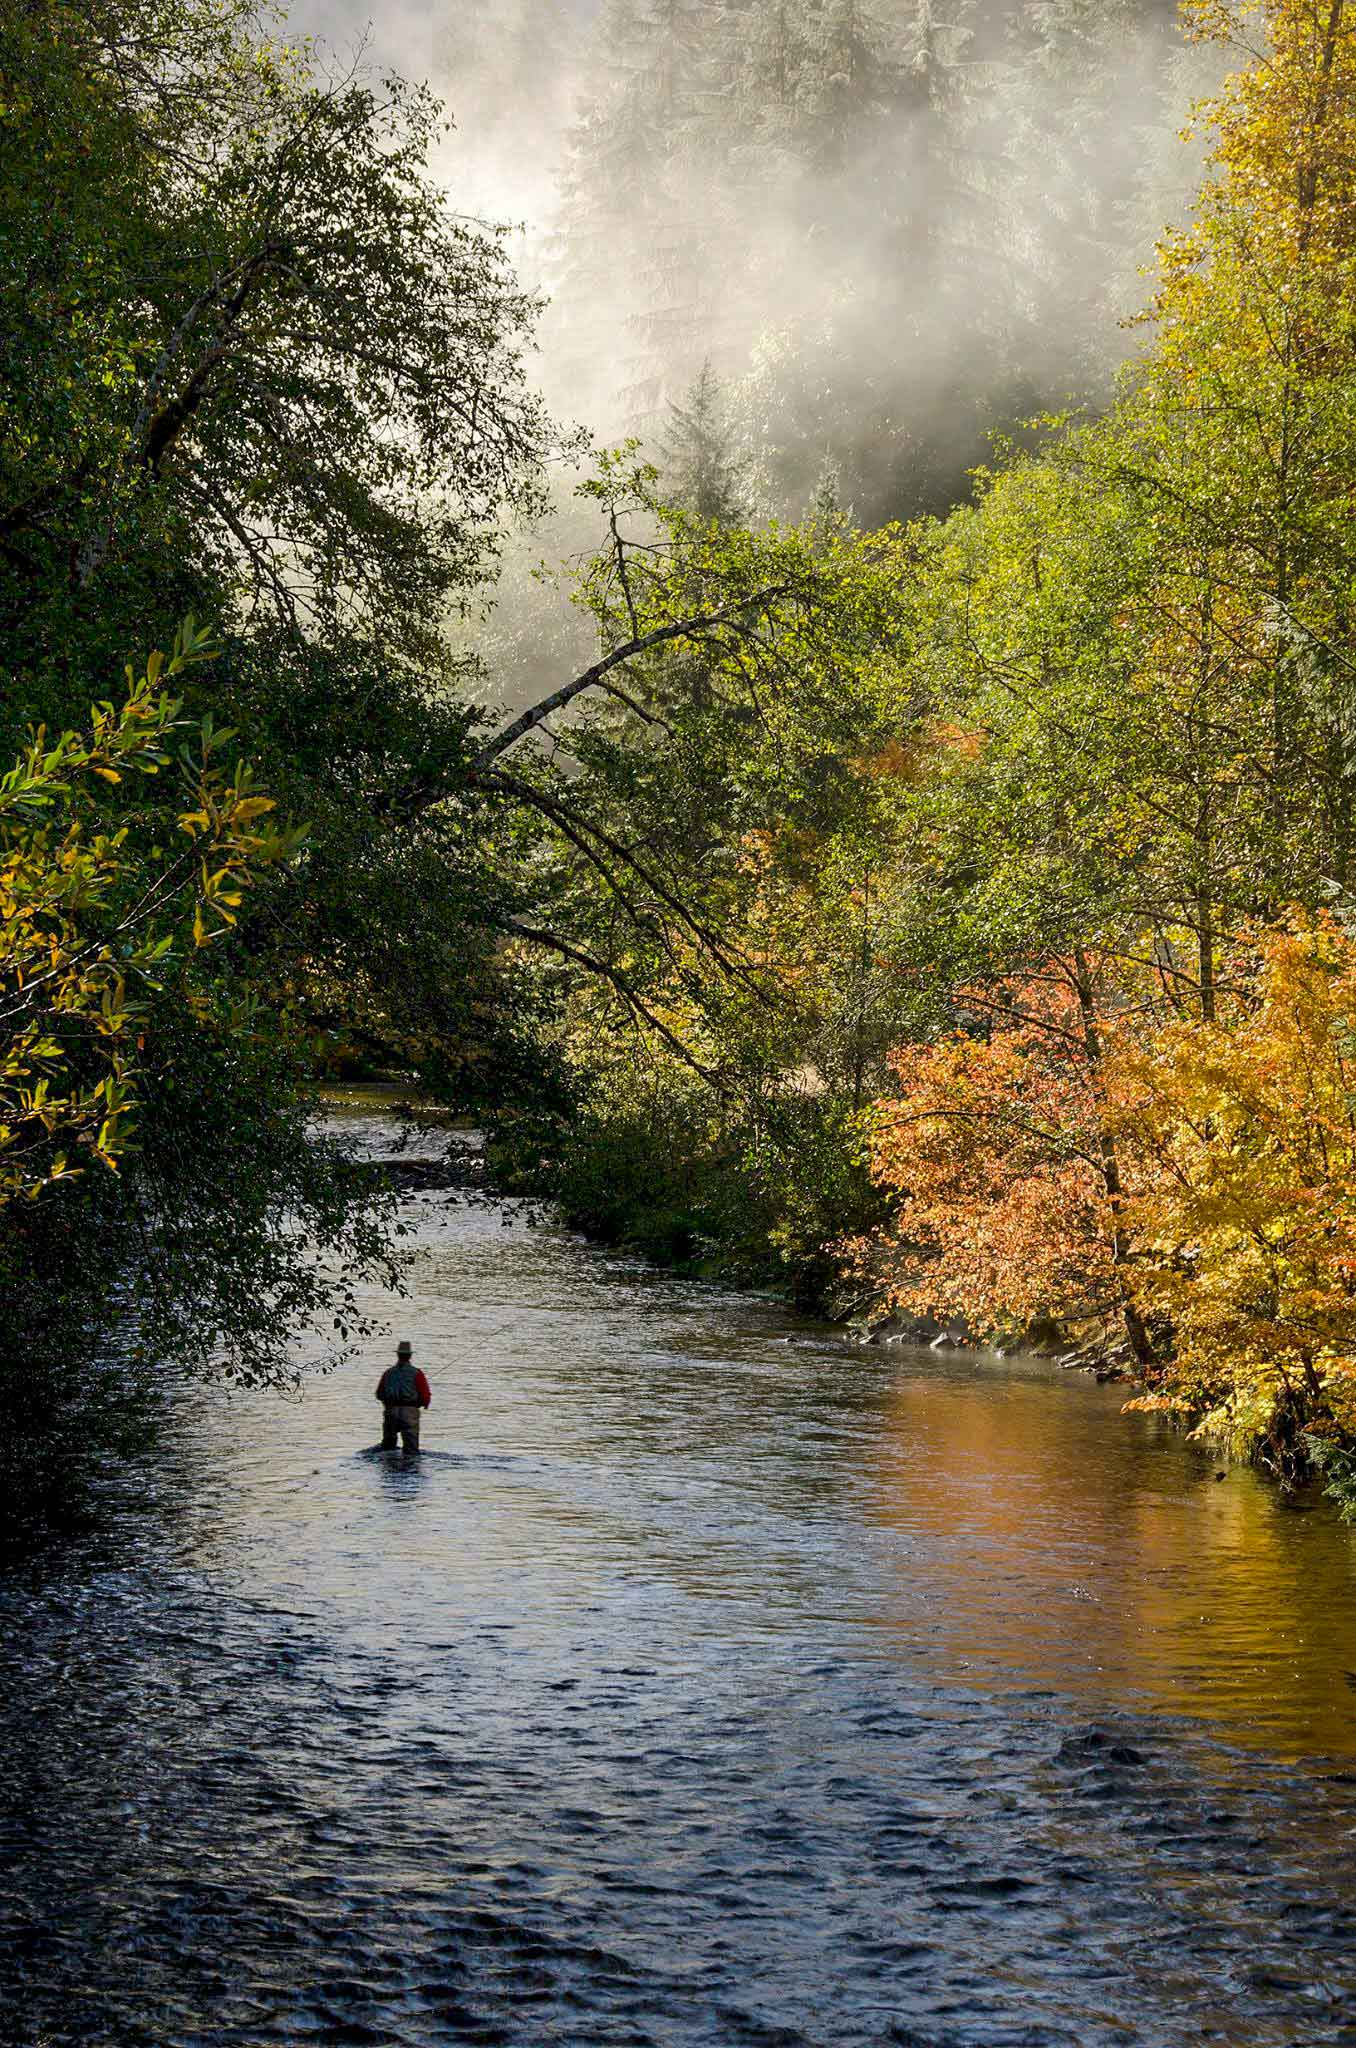 Fly Fishing in Old Age